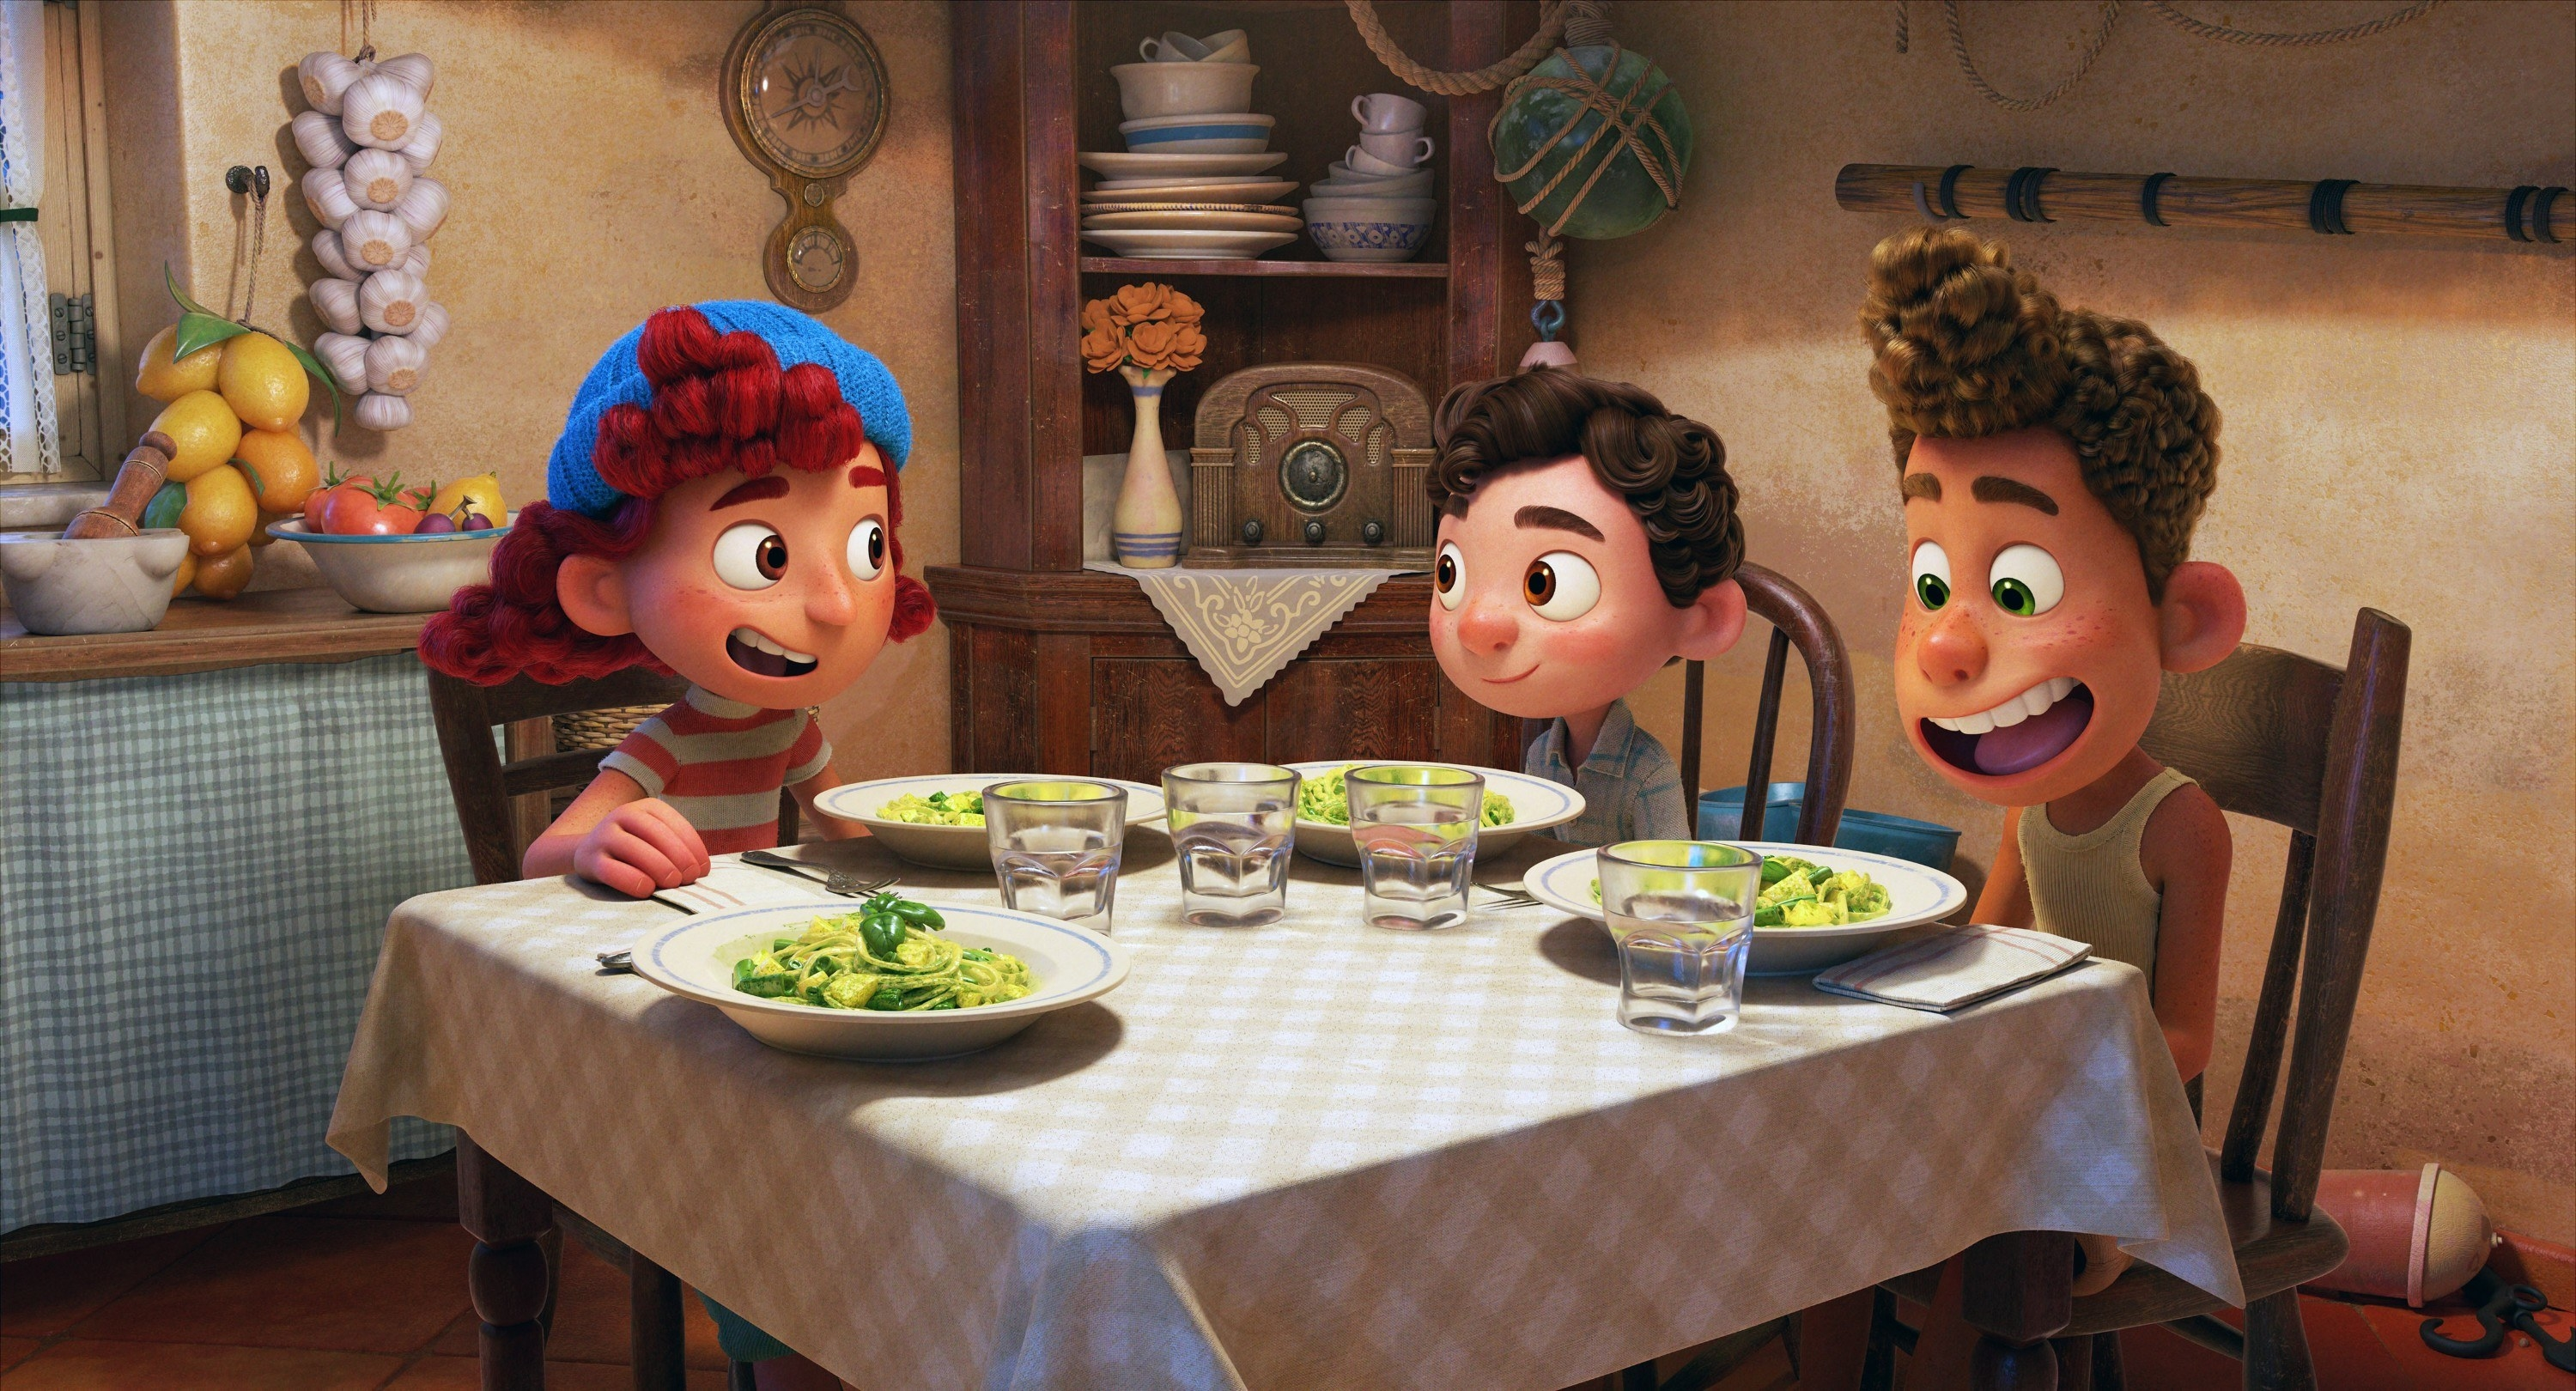 Guilia, Luca, and Alberto eating dinner together